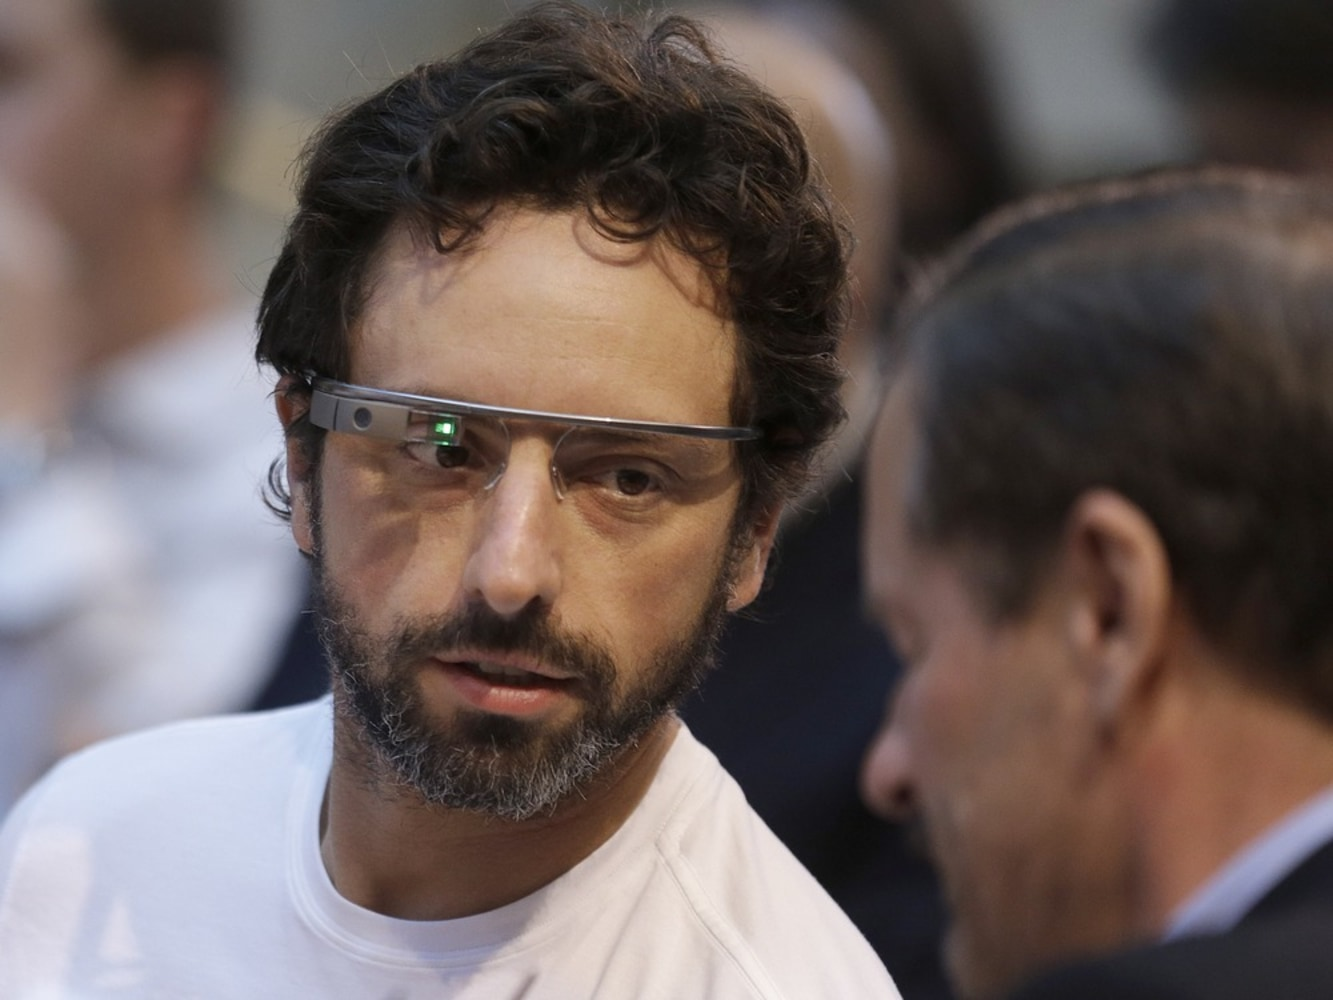 From strip clubs to theaters, Google Glass won't be welcome everywhere